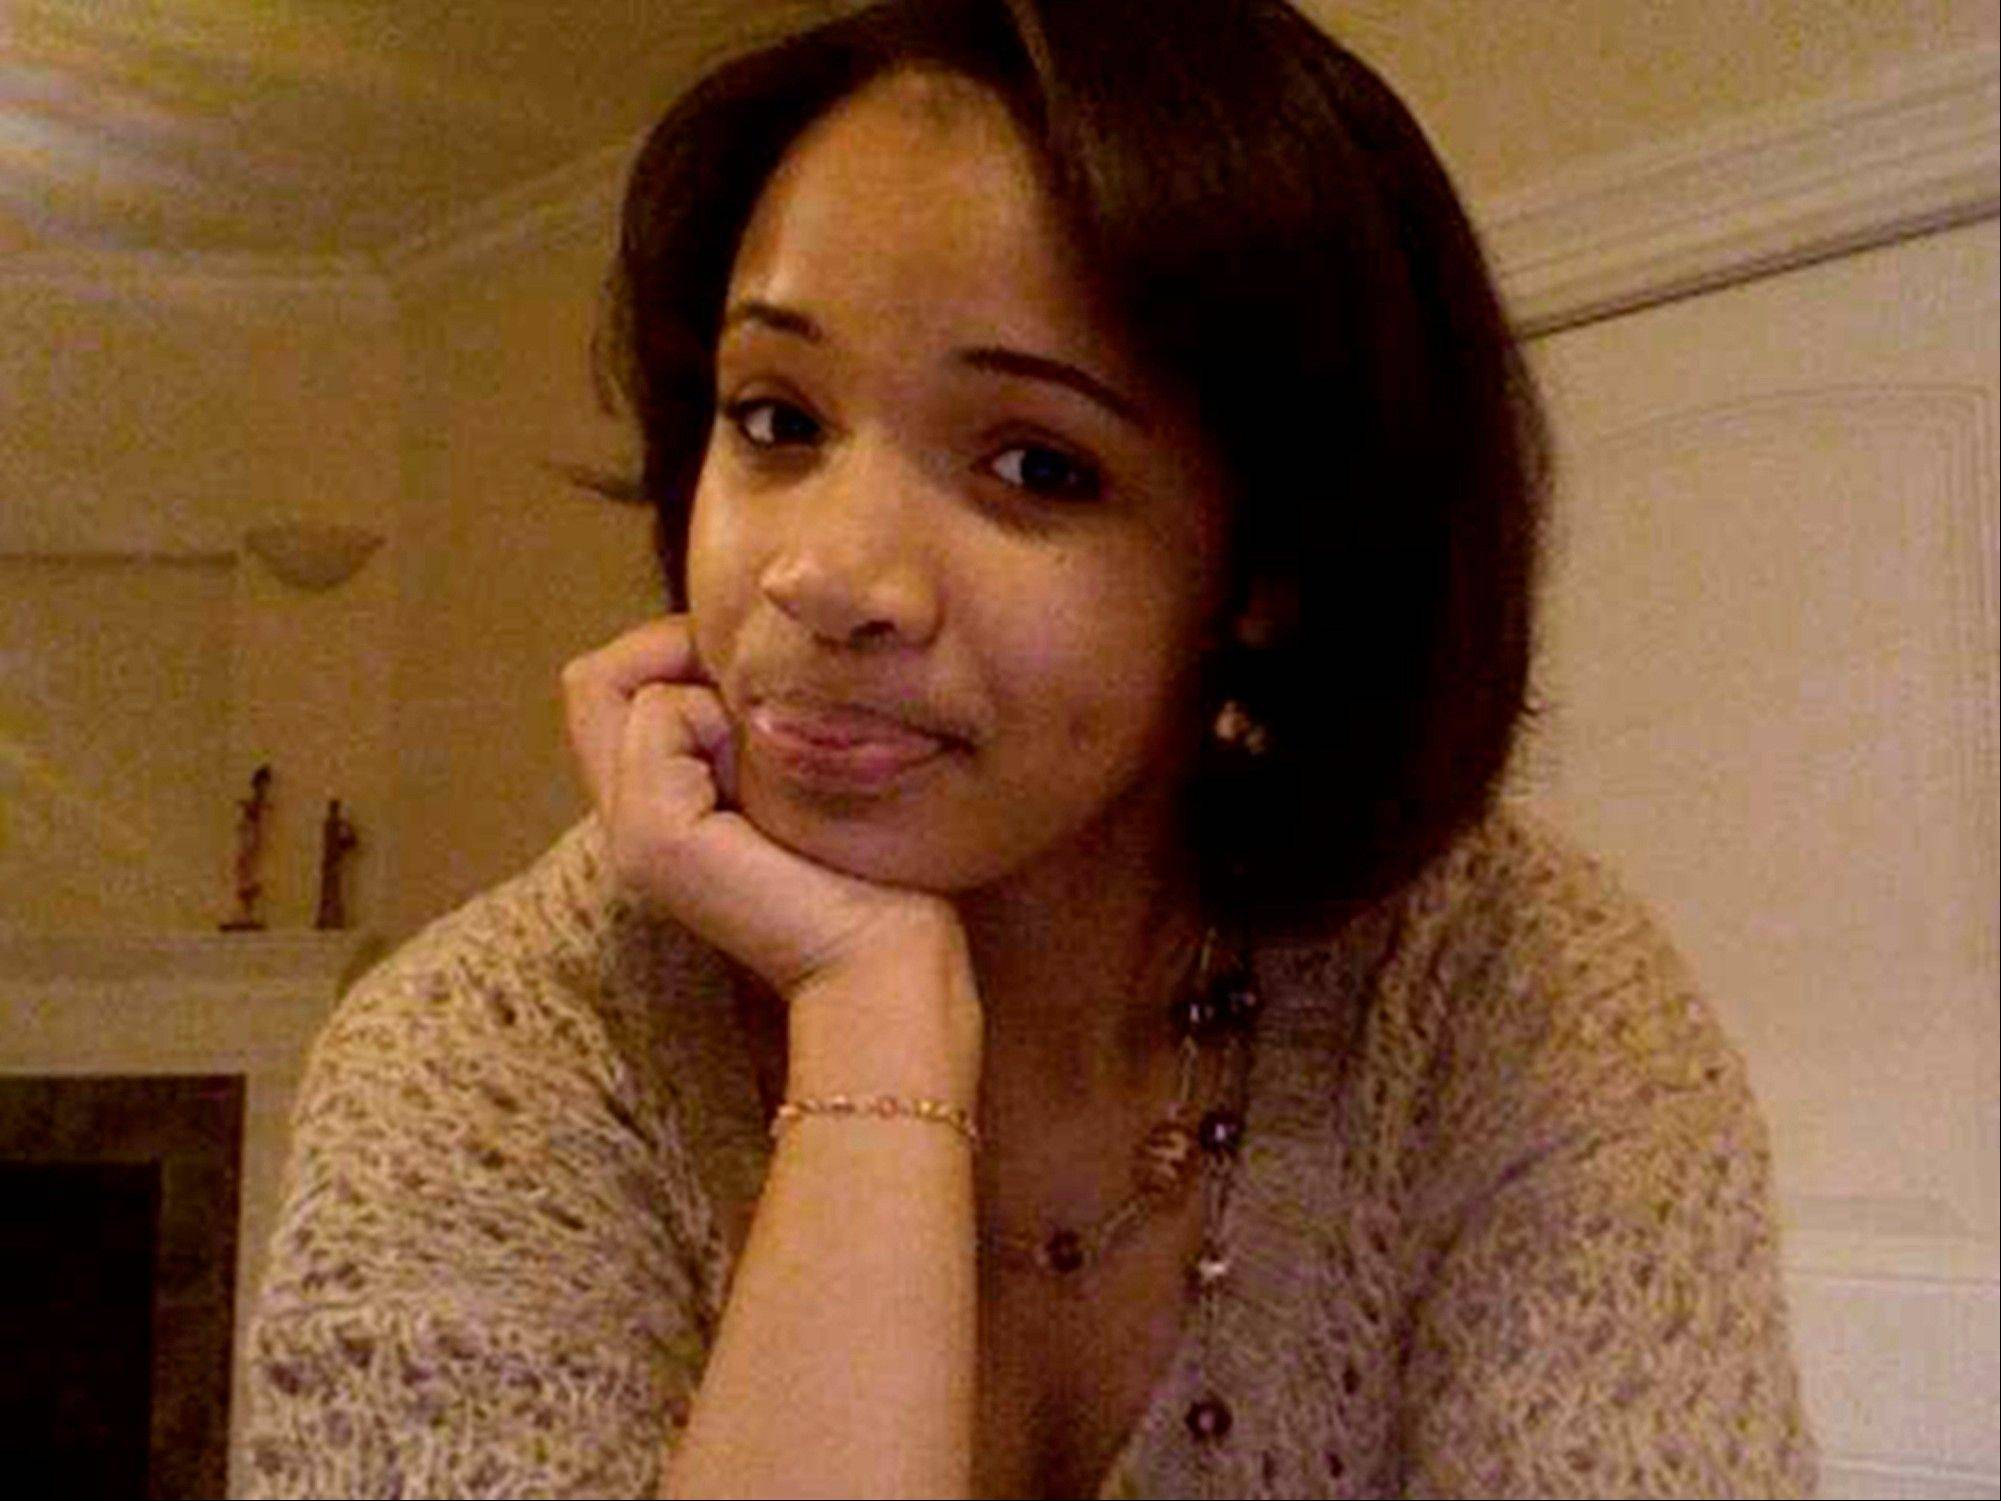 Hadiya Pendleton, 15, was shot and killed last week in a Chicago park as she talked with friends.